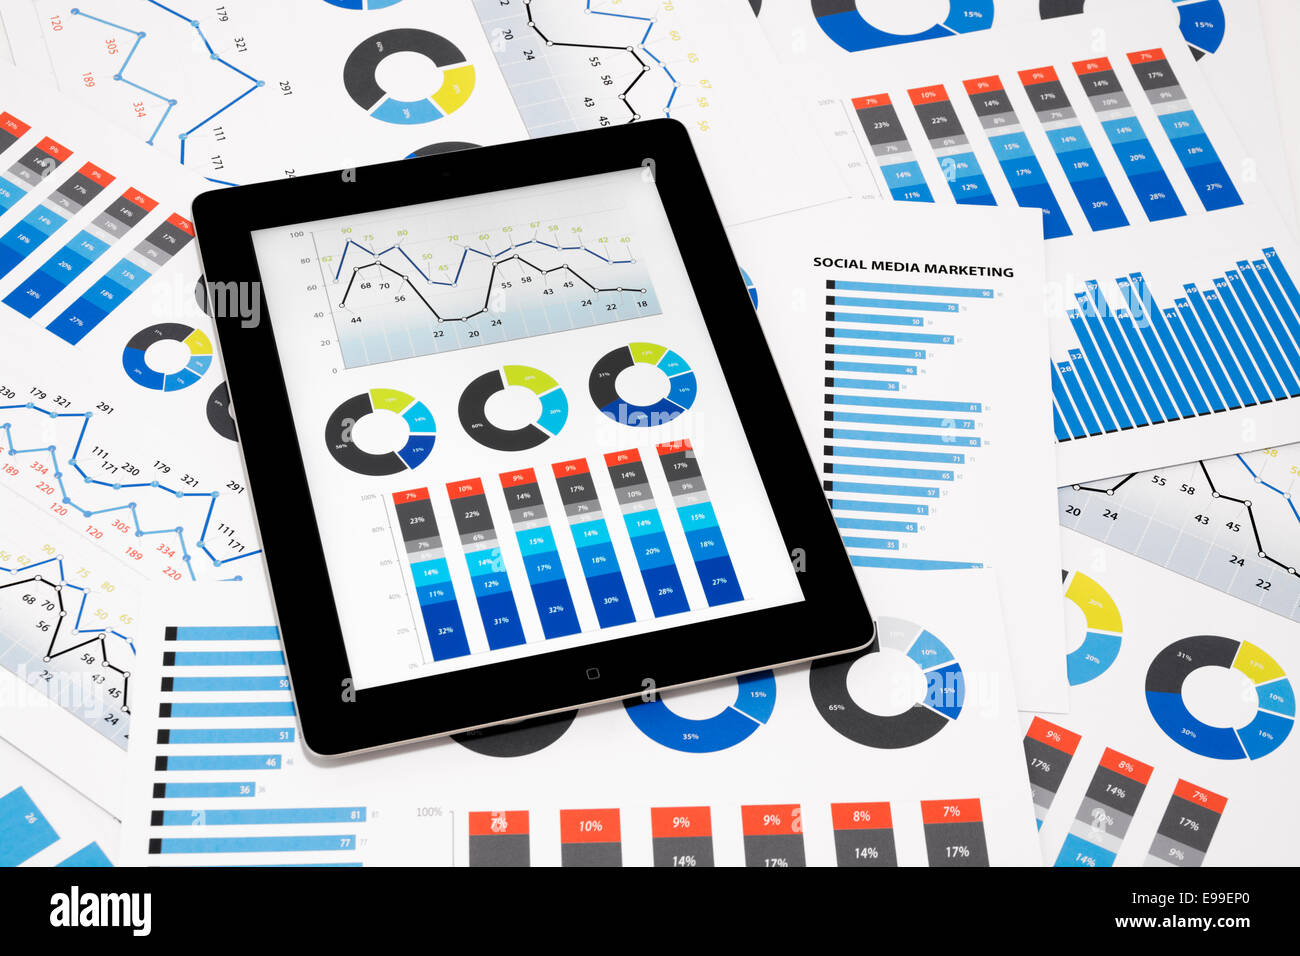 Business charts and diagrams on digital tablet. - Stock Image